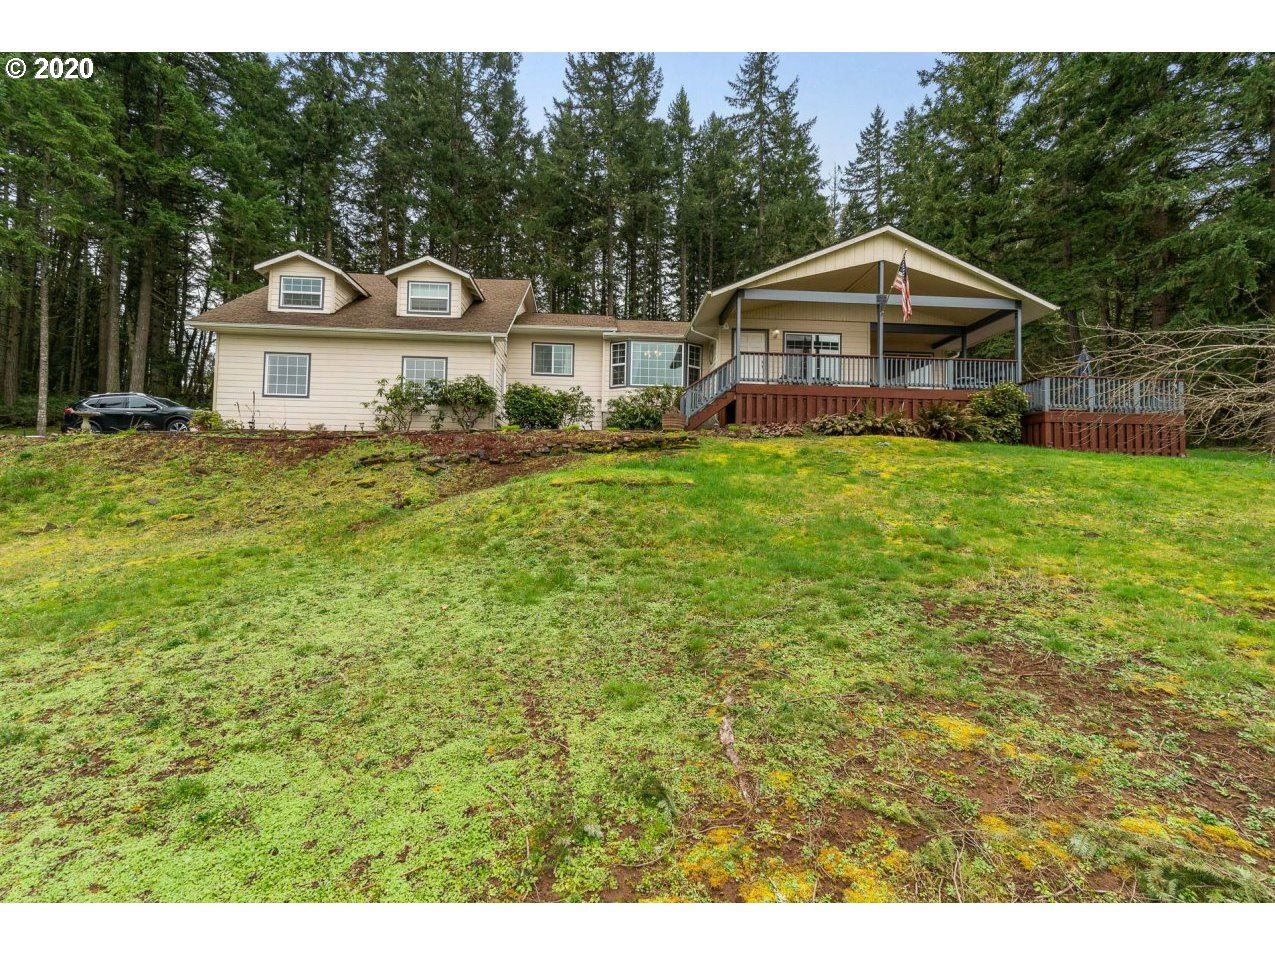 Photo for 37296 HWY 58, Pleasant Hill, OR 97455 (MLS # 20267345)